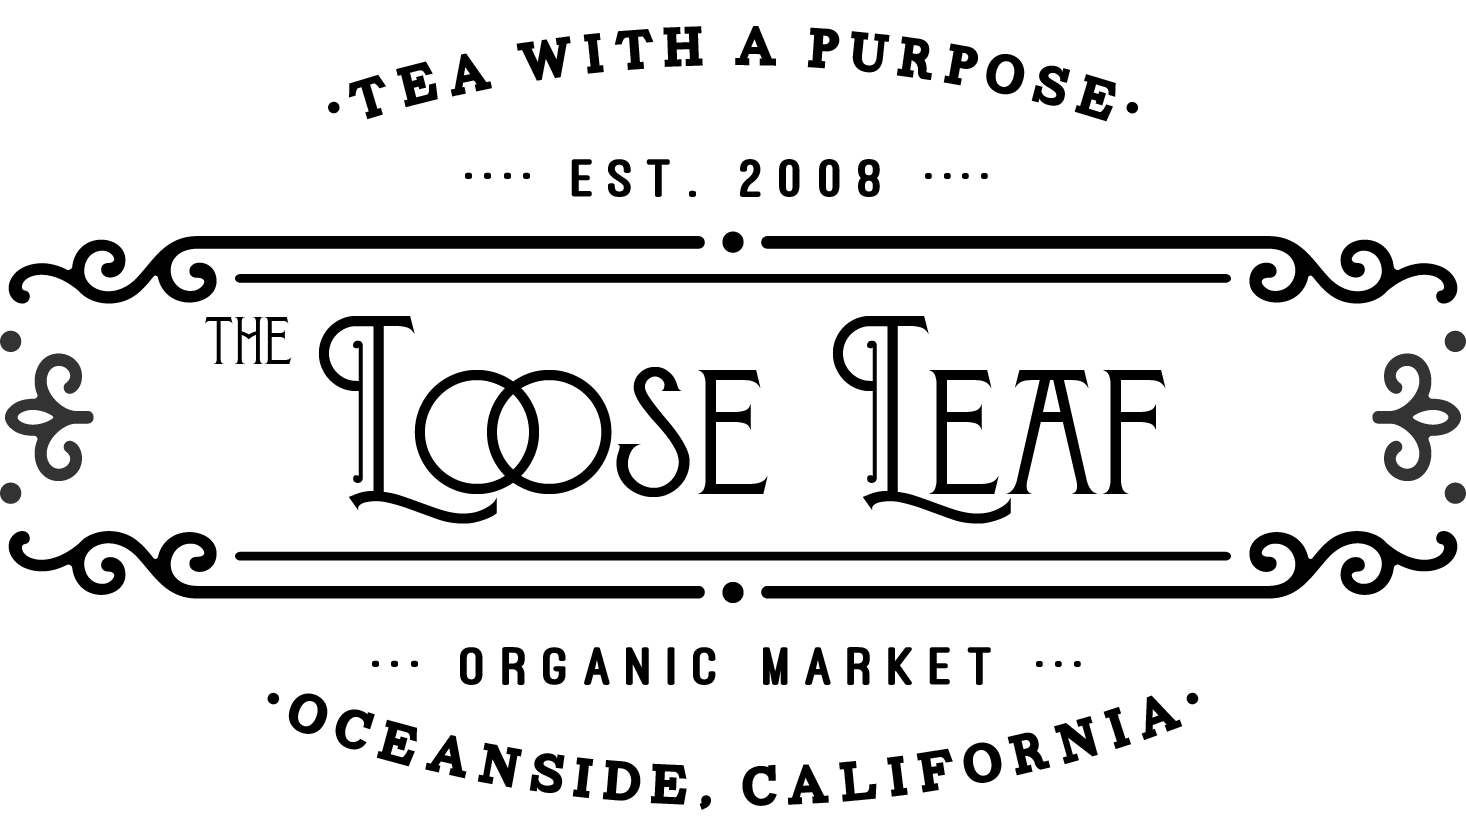 The Loose Leaf